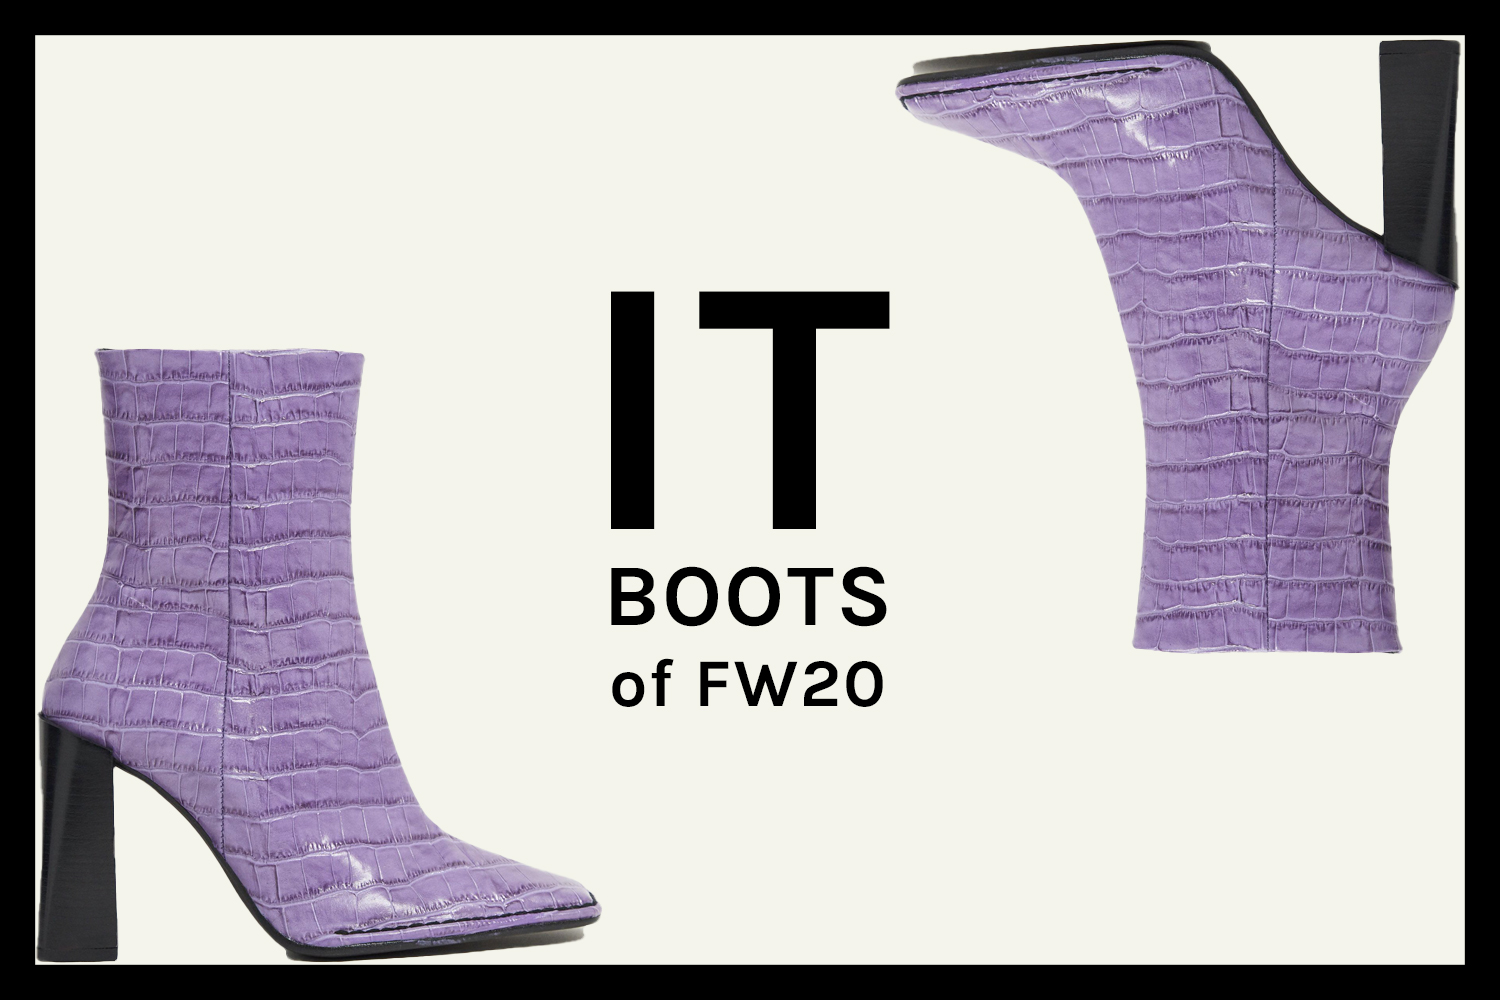 It boots of Fall 2020